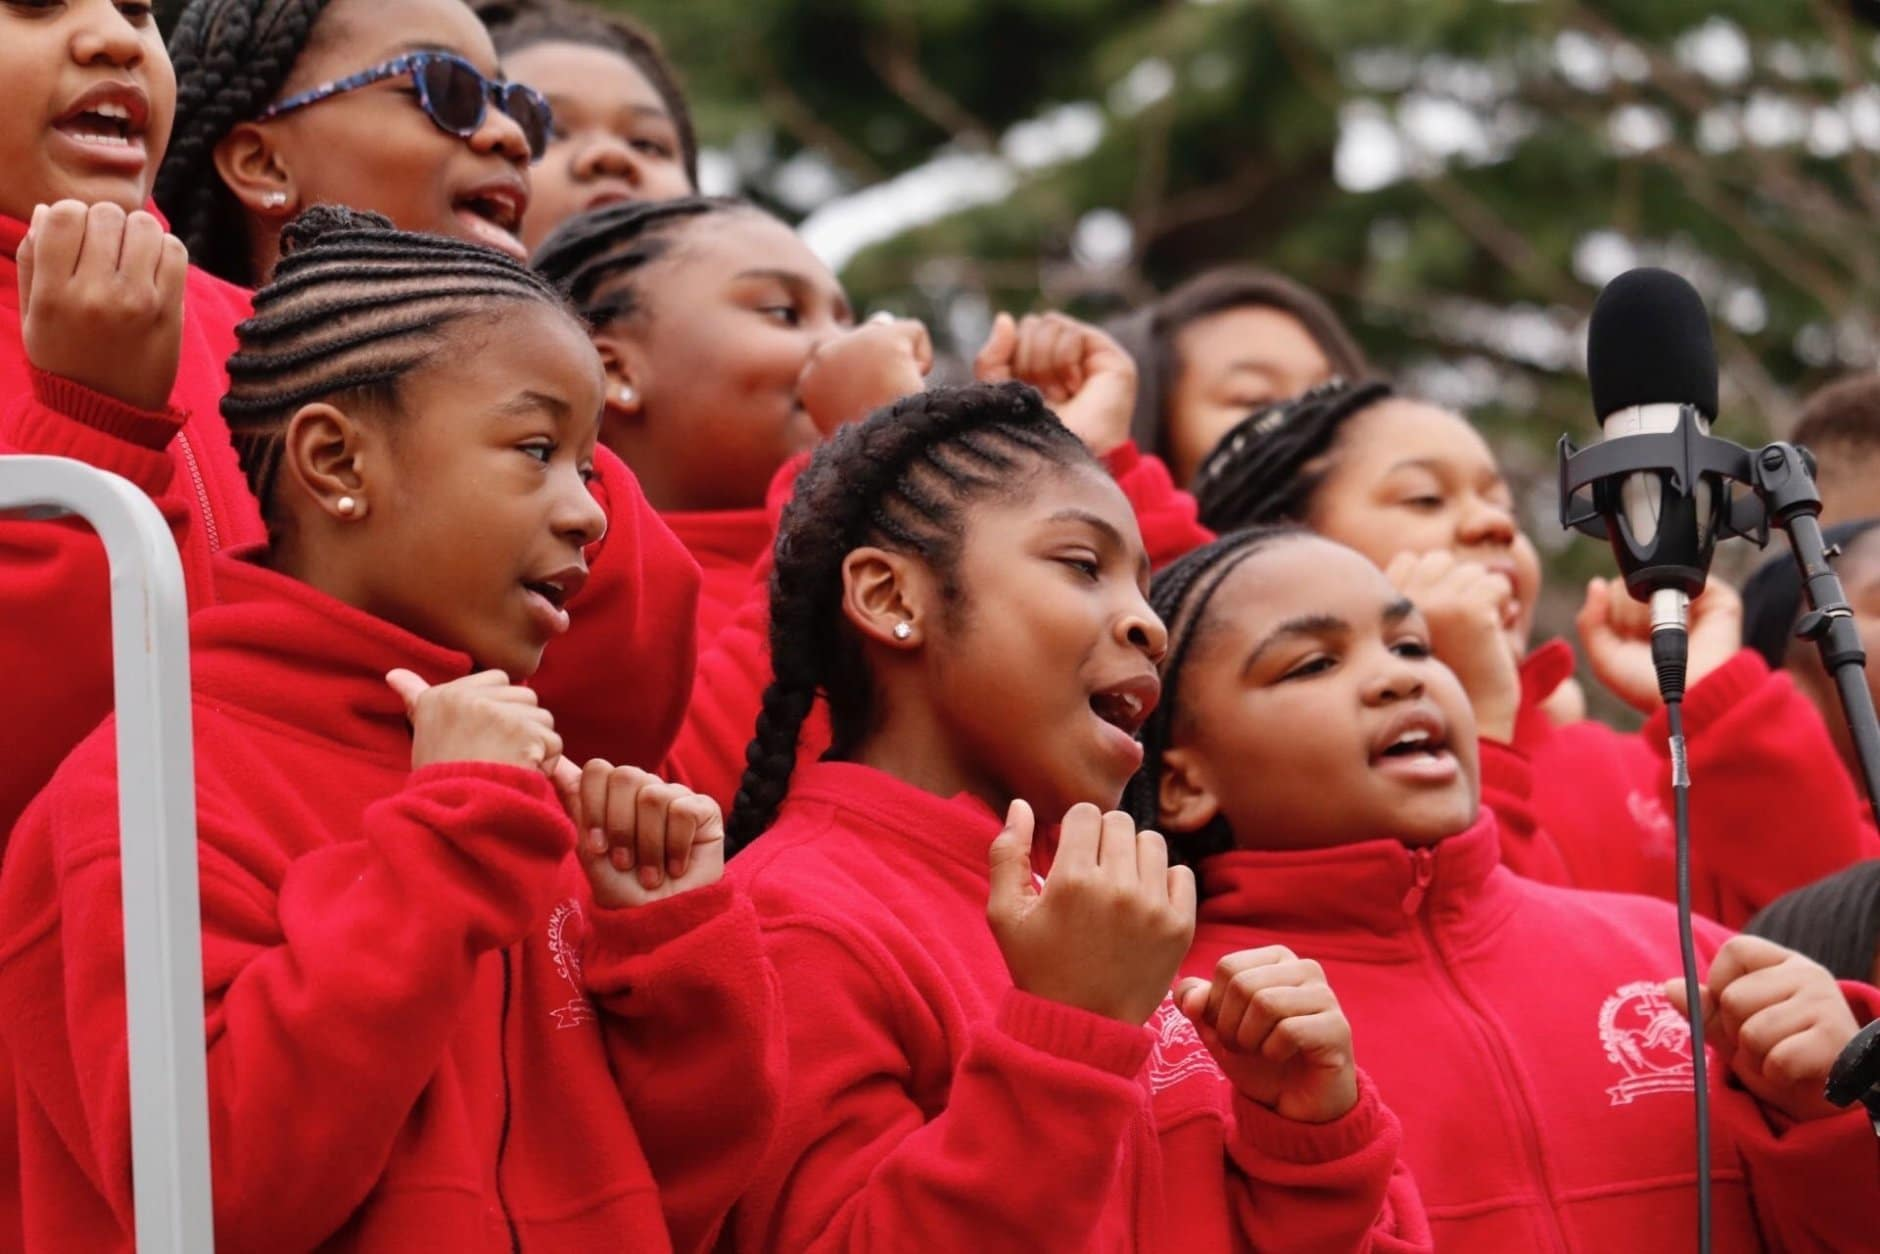 A section of the choir from Cardinal Shehan Catholic School from Baltimore gets the crowd warmed up before the inaugural speeches. (WTOP/Kate Ryan)